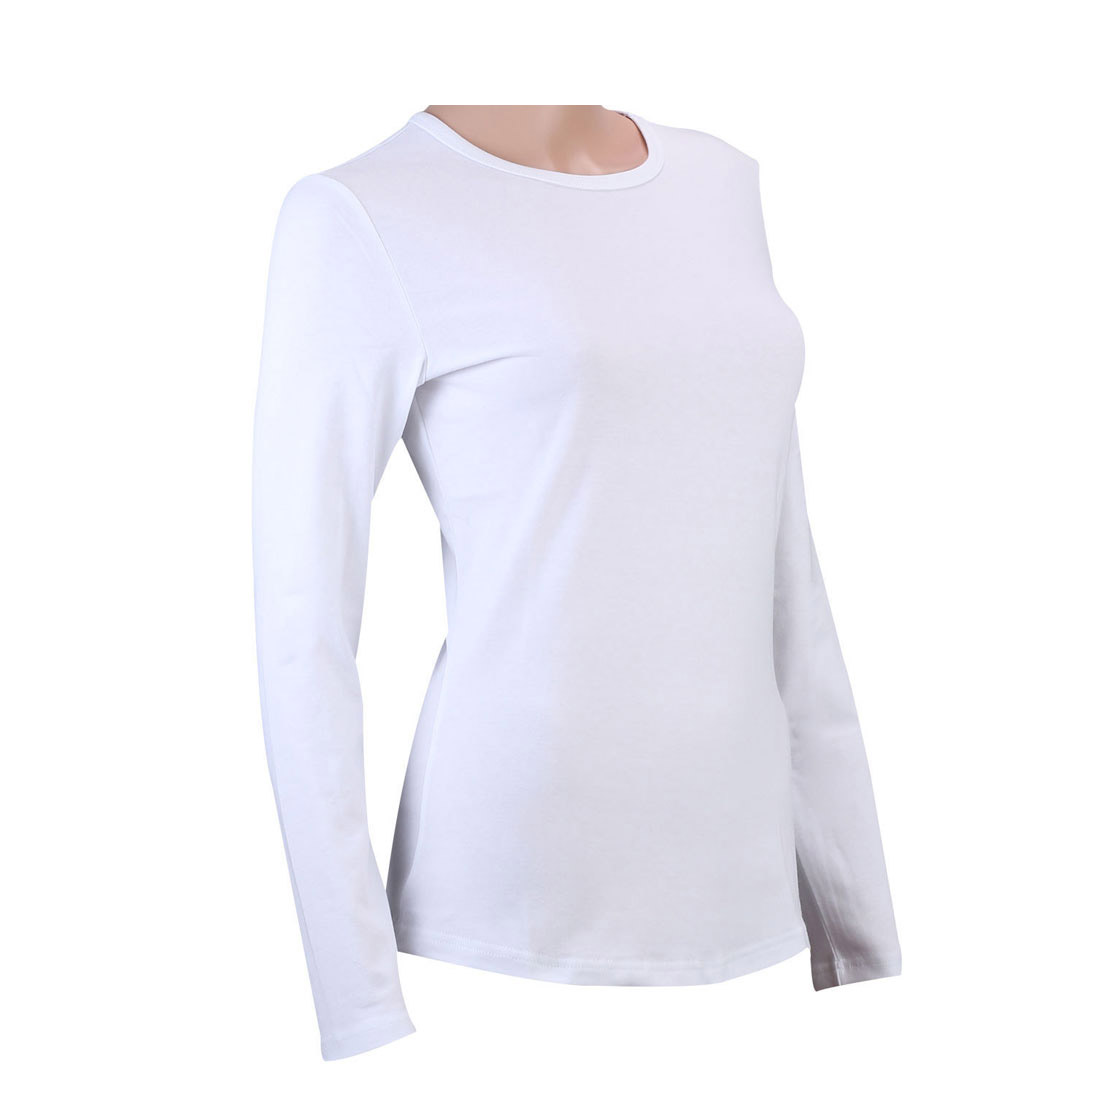 100 cotton womens basic tee long sleeve t shirt plain